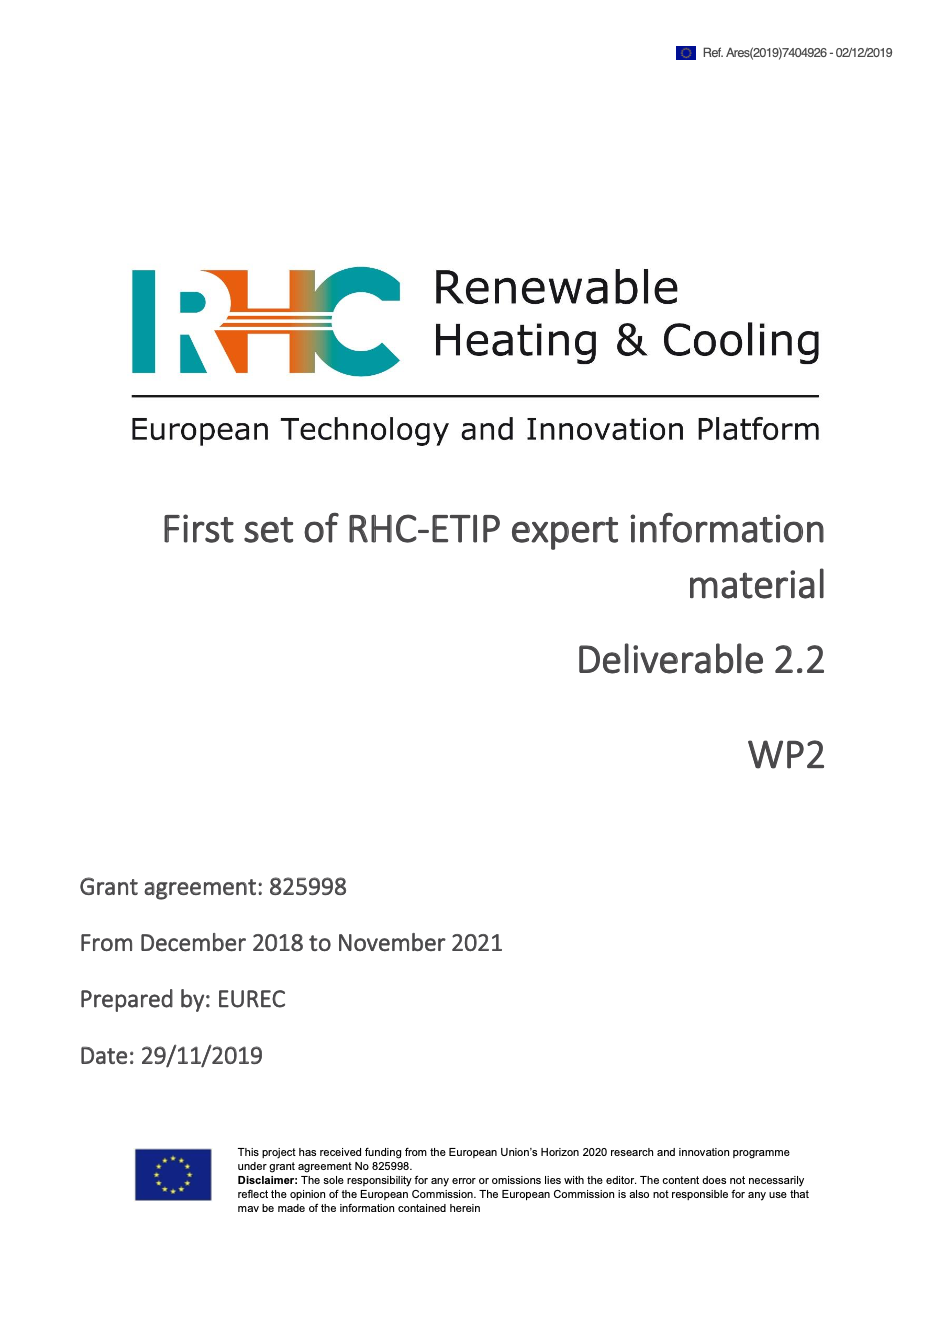 D2.2 First set of RHC-ETIP expert information material